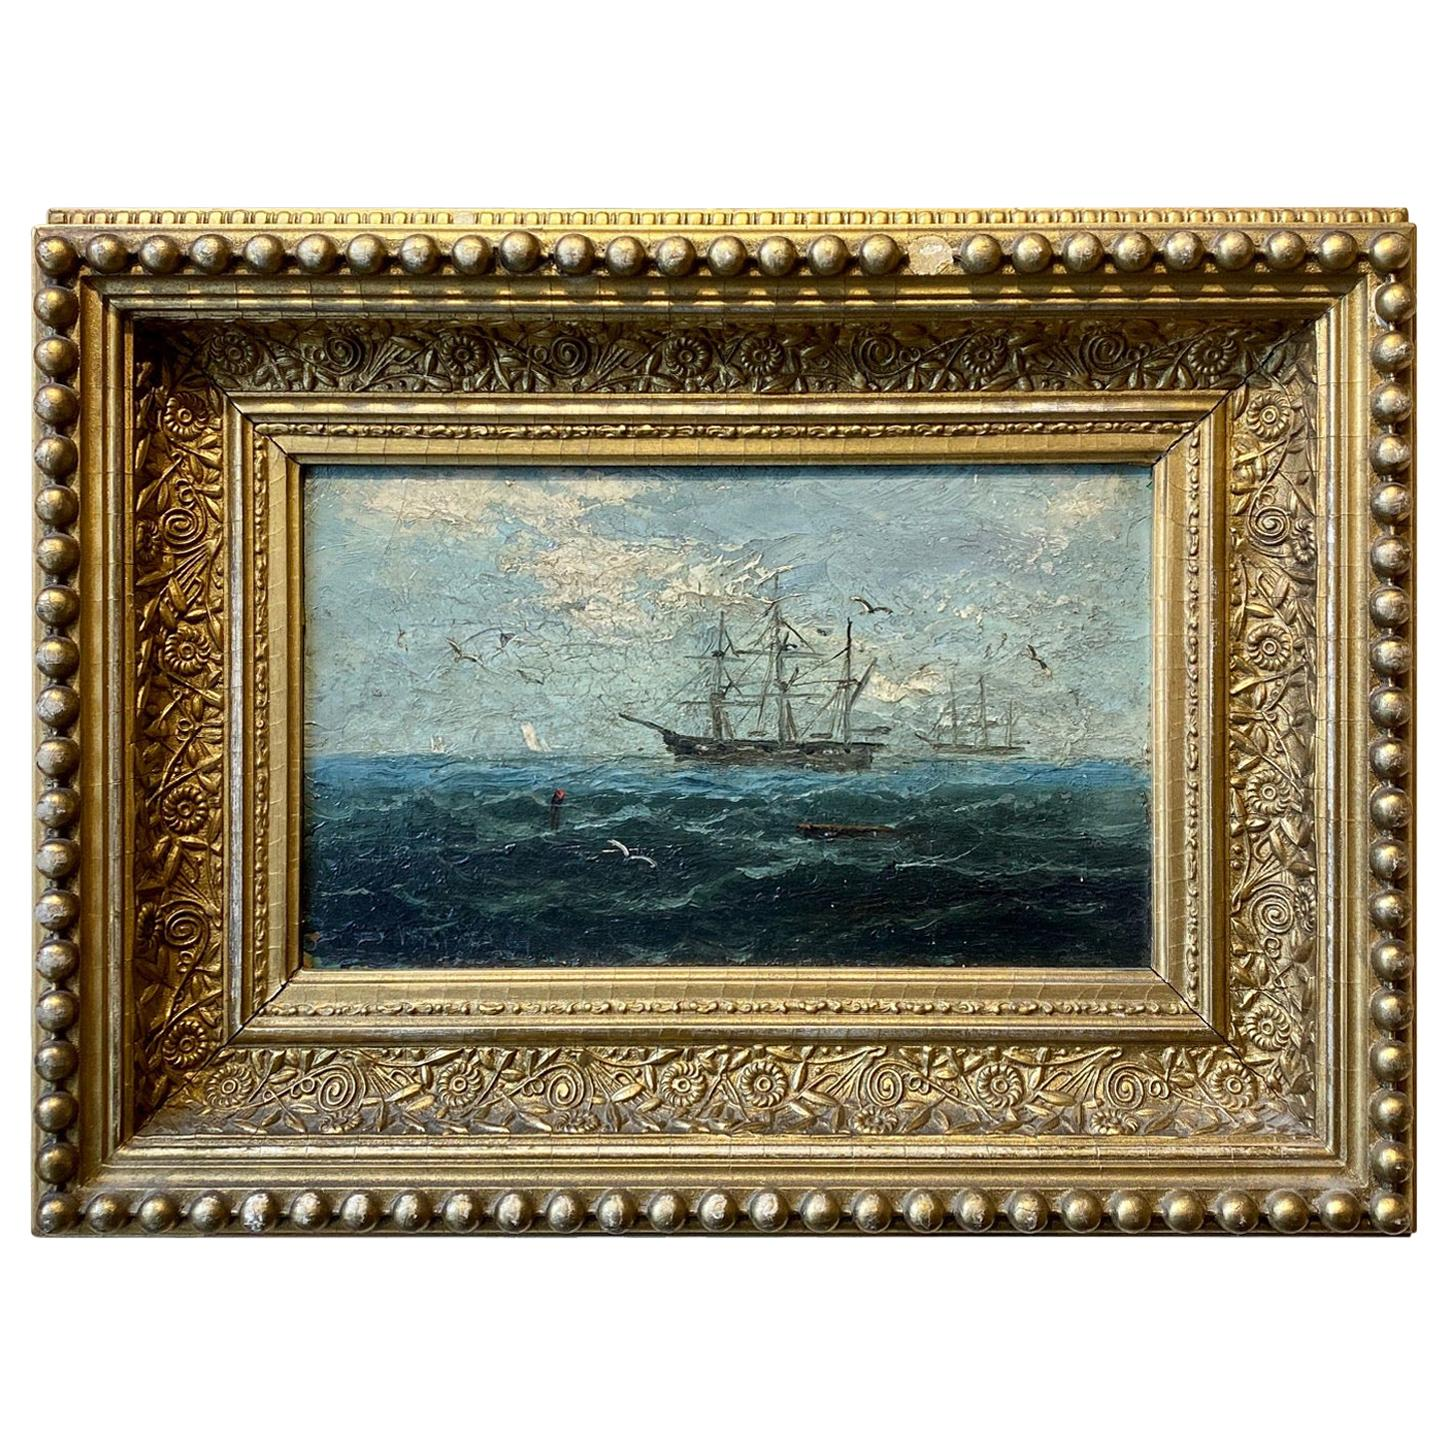 Seascape with Whale Ship, by J.H. Appleby, circa 1880